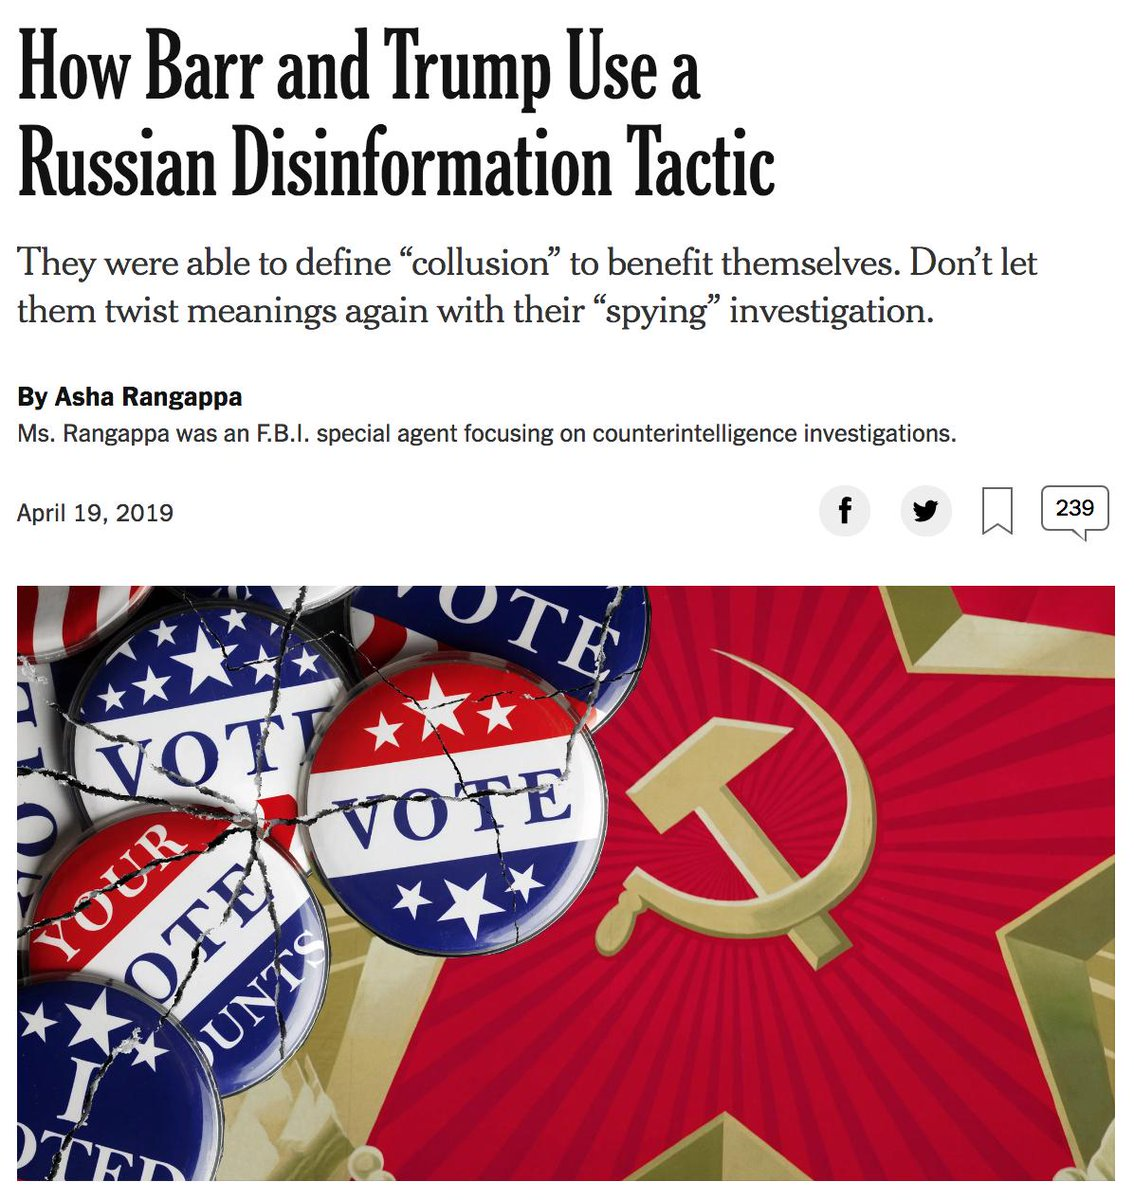 After all this time, the NYT is still publishing columns about Trump/Russia featuring the hammer-and-sickle. Really, what's there to say anymore? These people are simply beyond reason